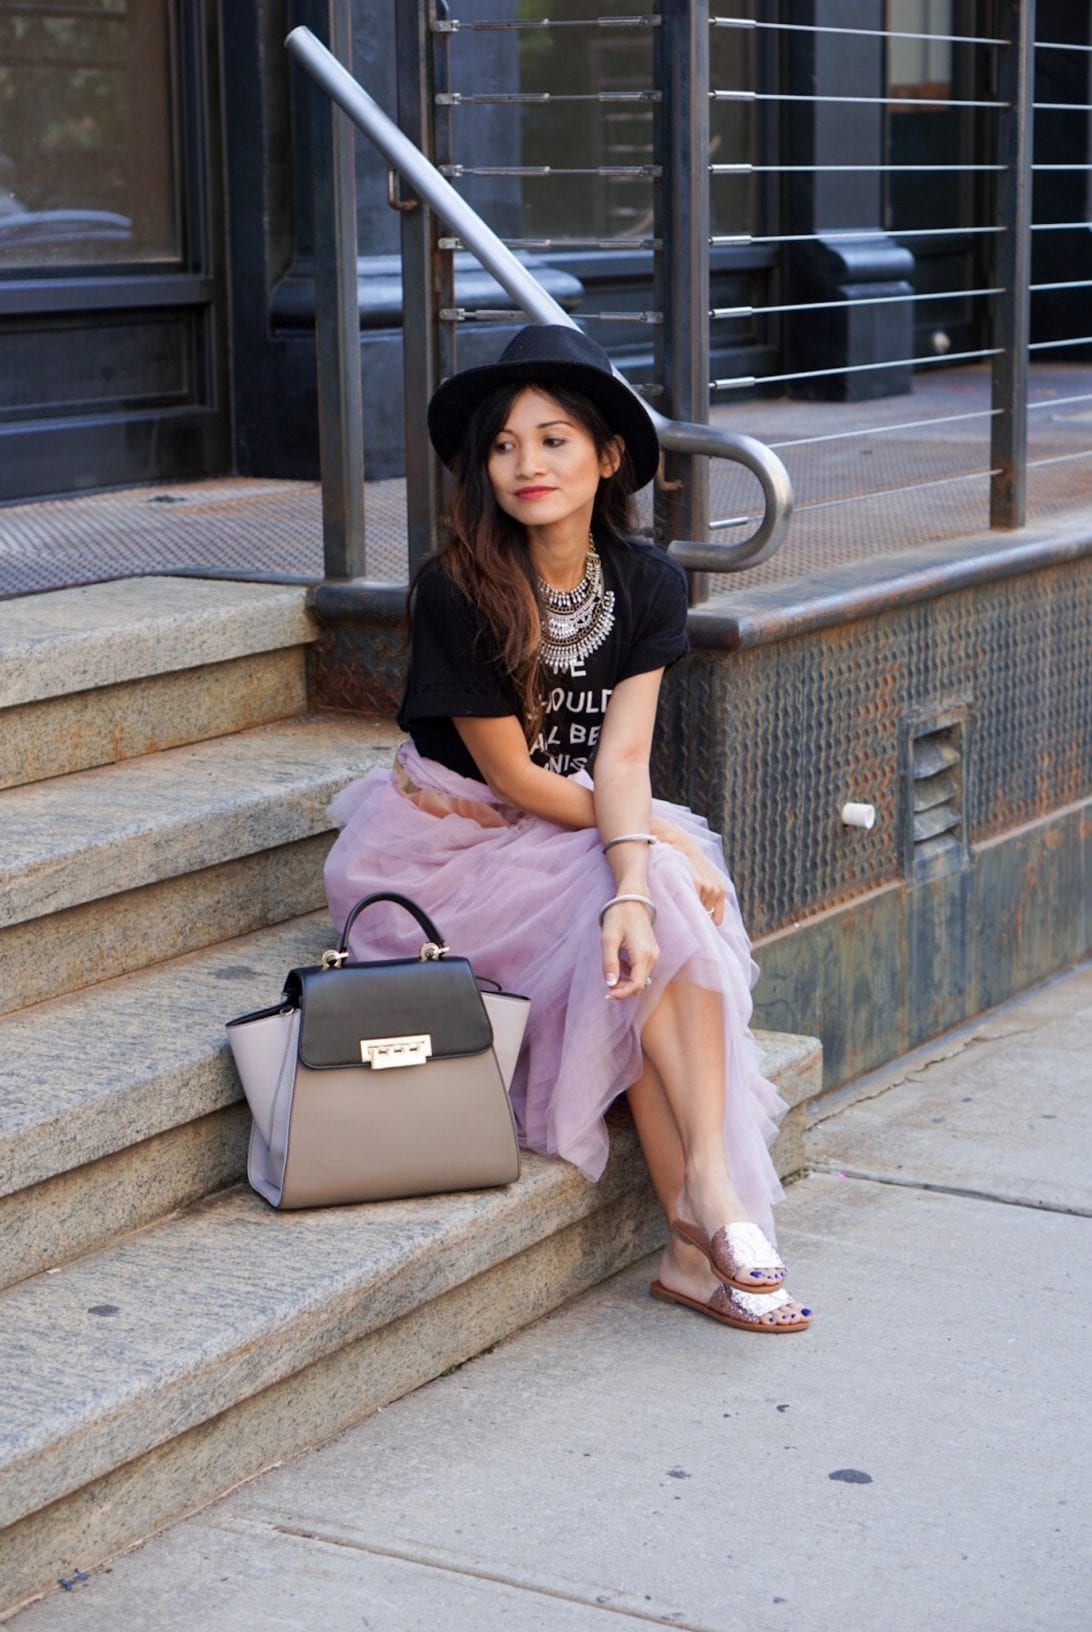 NYC STREET STYLE, New York FASHION WEEK, New York CITY, NYFW 2017, NYFW STREET STYLE, STREET STYLE, FEMINIST, TULLE SKIRT, SEX AND THE CITY OUTFIT, NY GLITTER FLATS, ZAC ZAC POSEN BAG, BLACK FEDORA